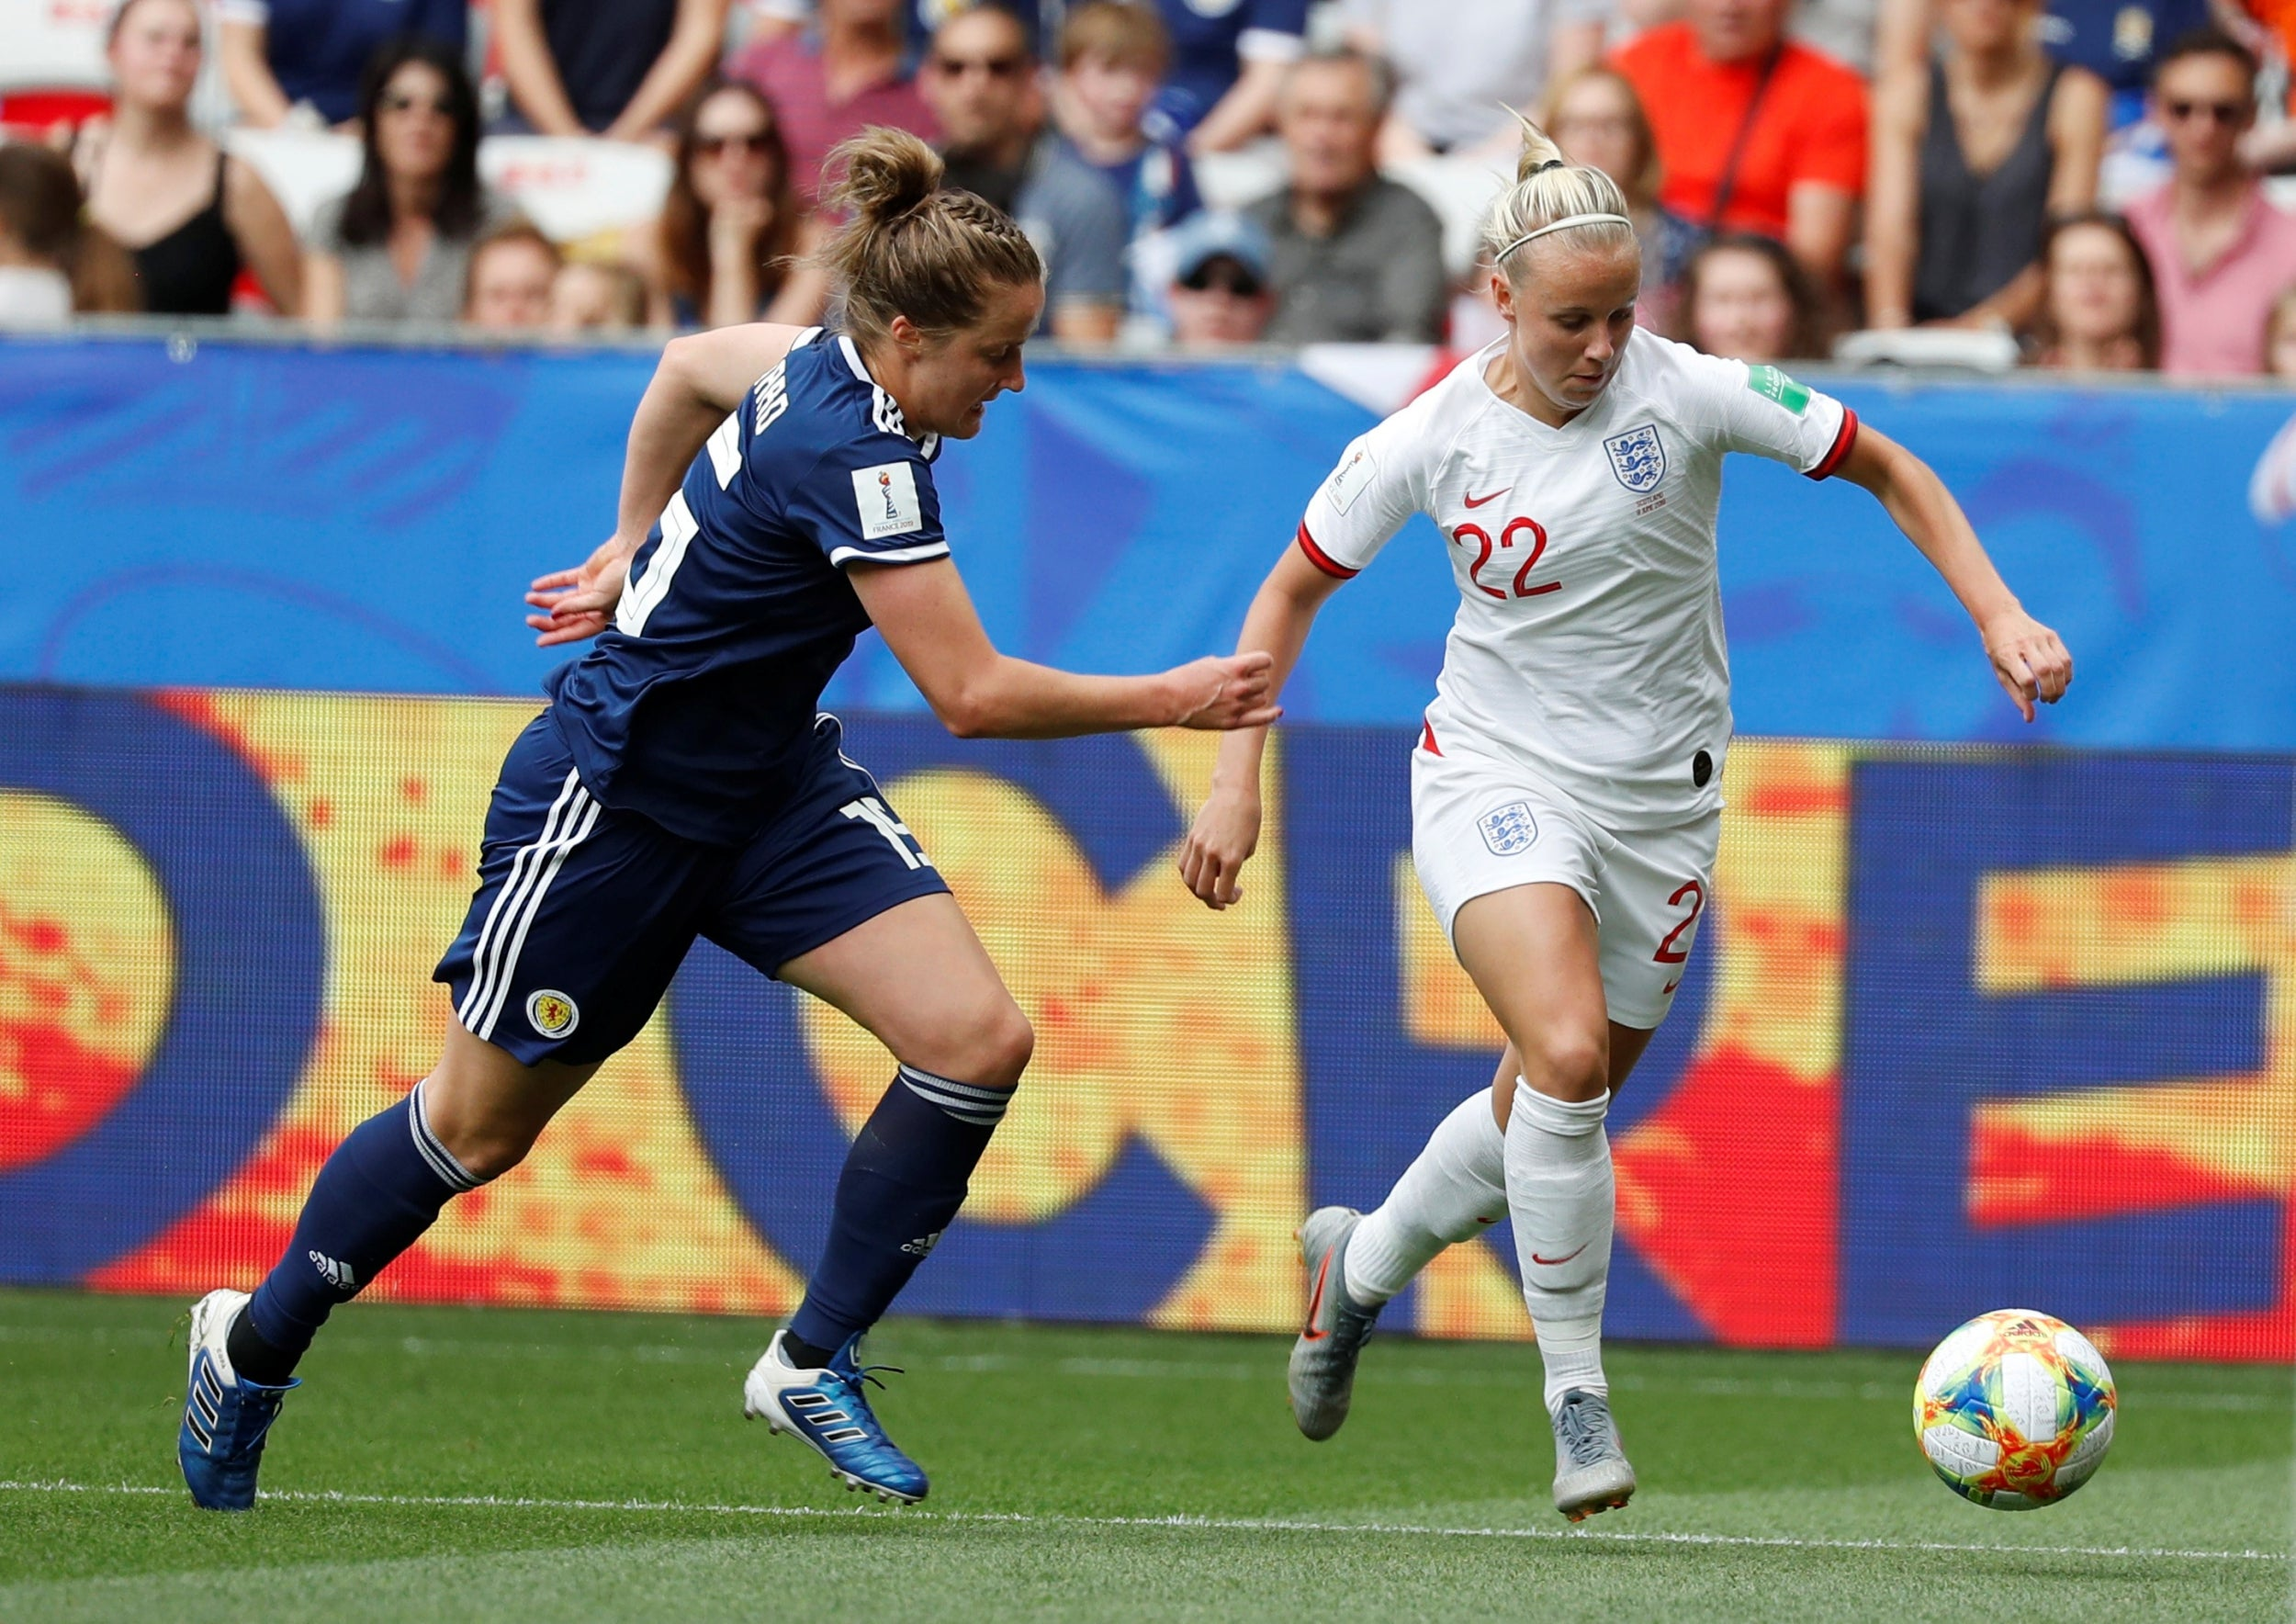 England forward Beth Mead sees Germany clash as chance to 'keep people hooked' on women's football